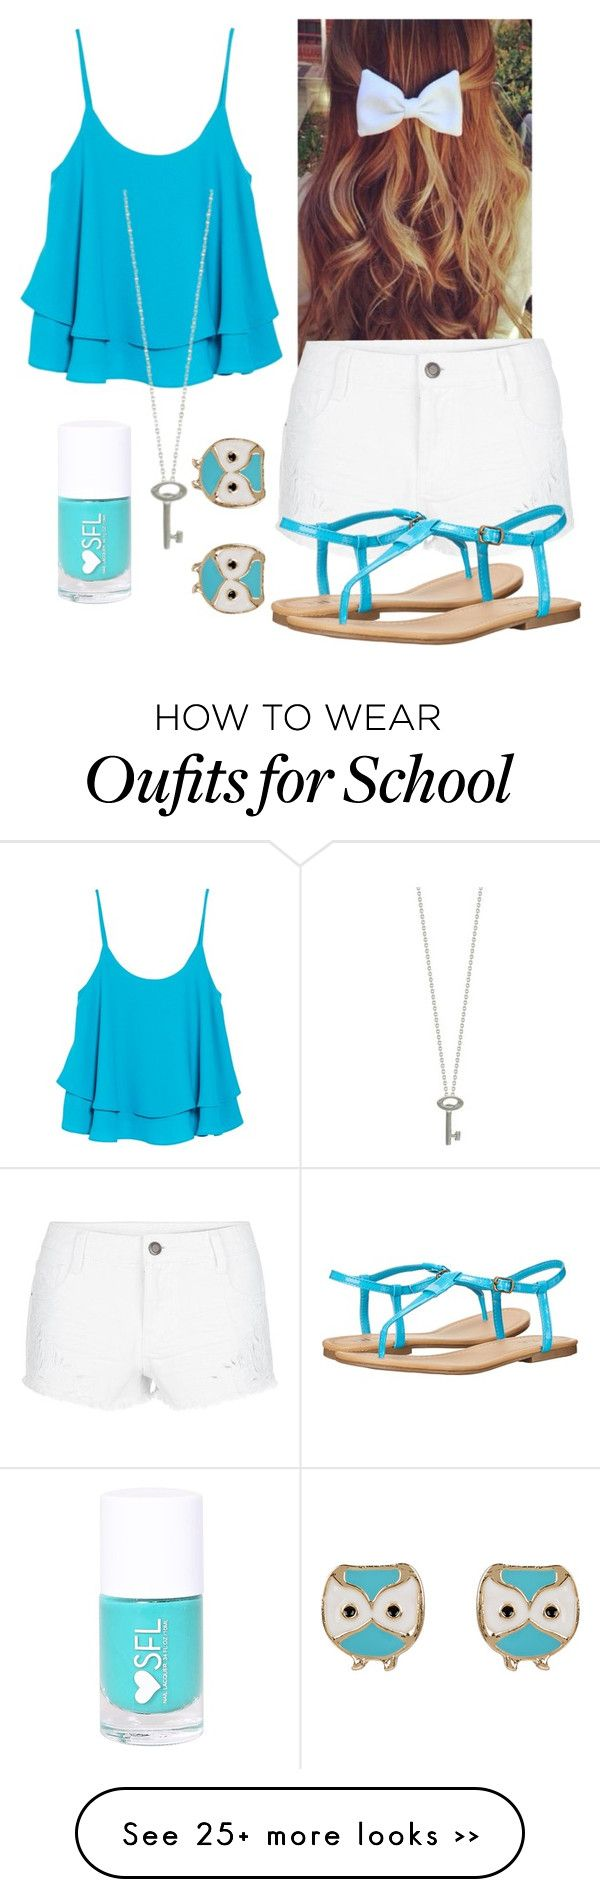 """BACK TO SCHOOL LOOK"" by shayat2020 on Polyvore"